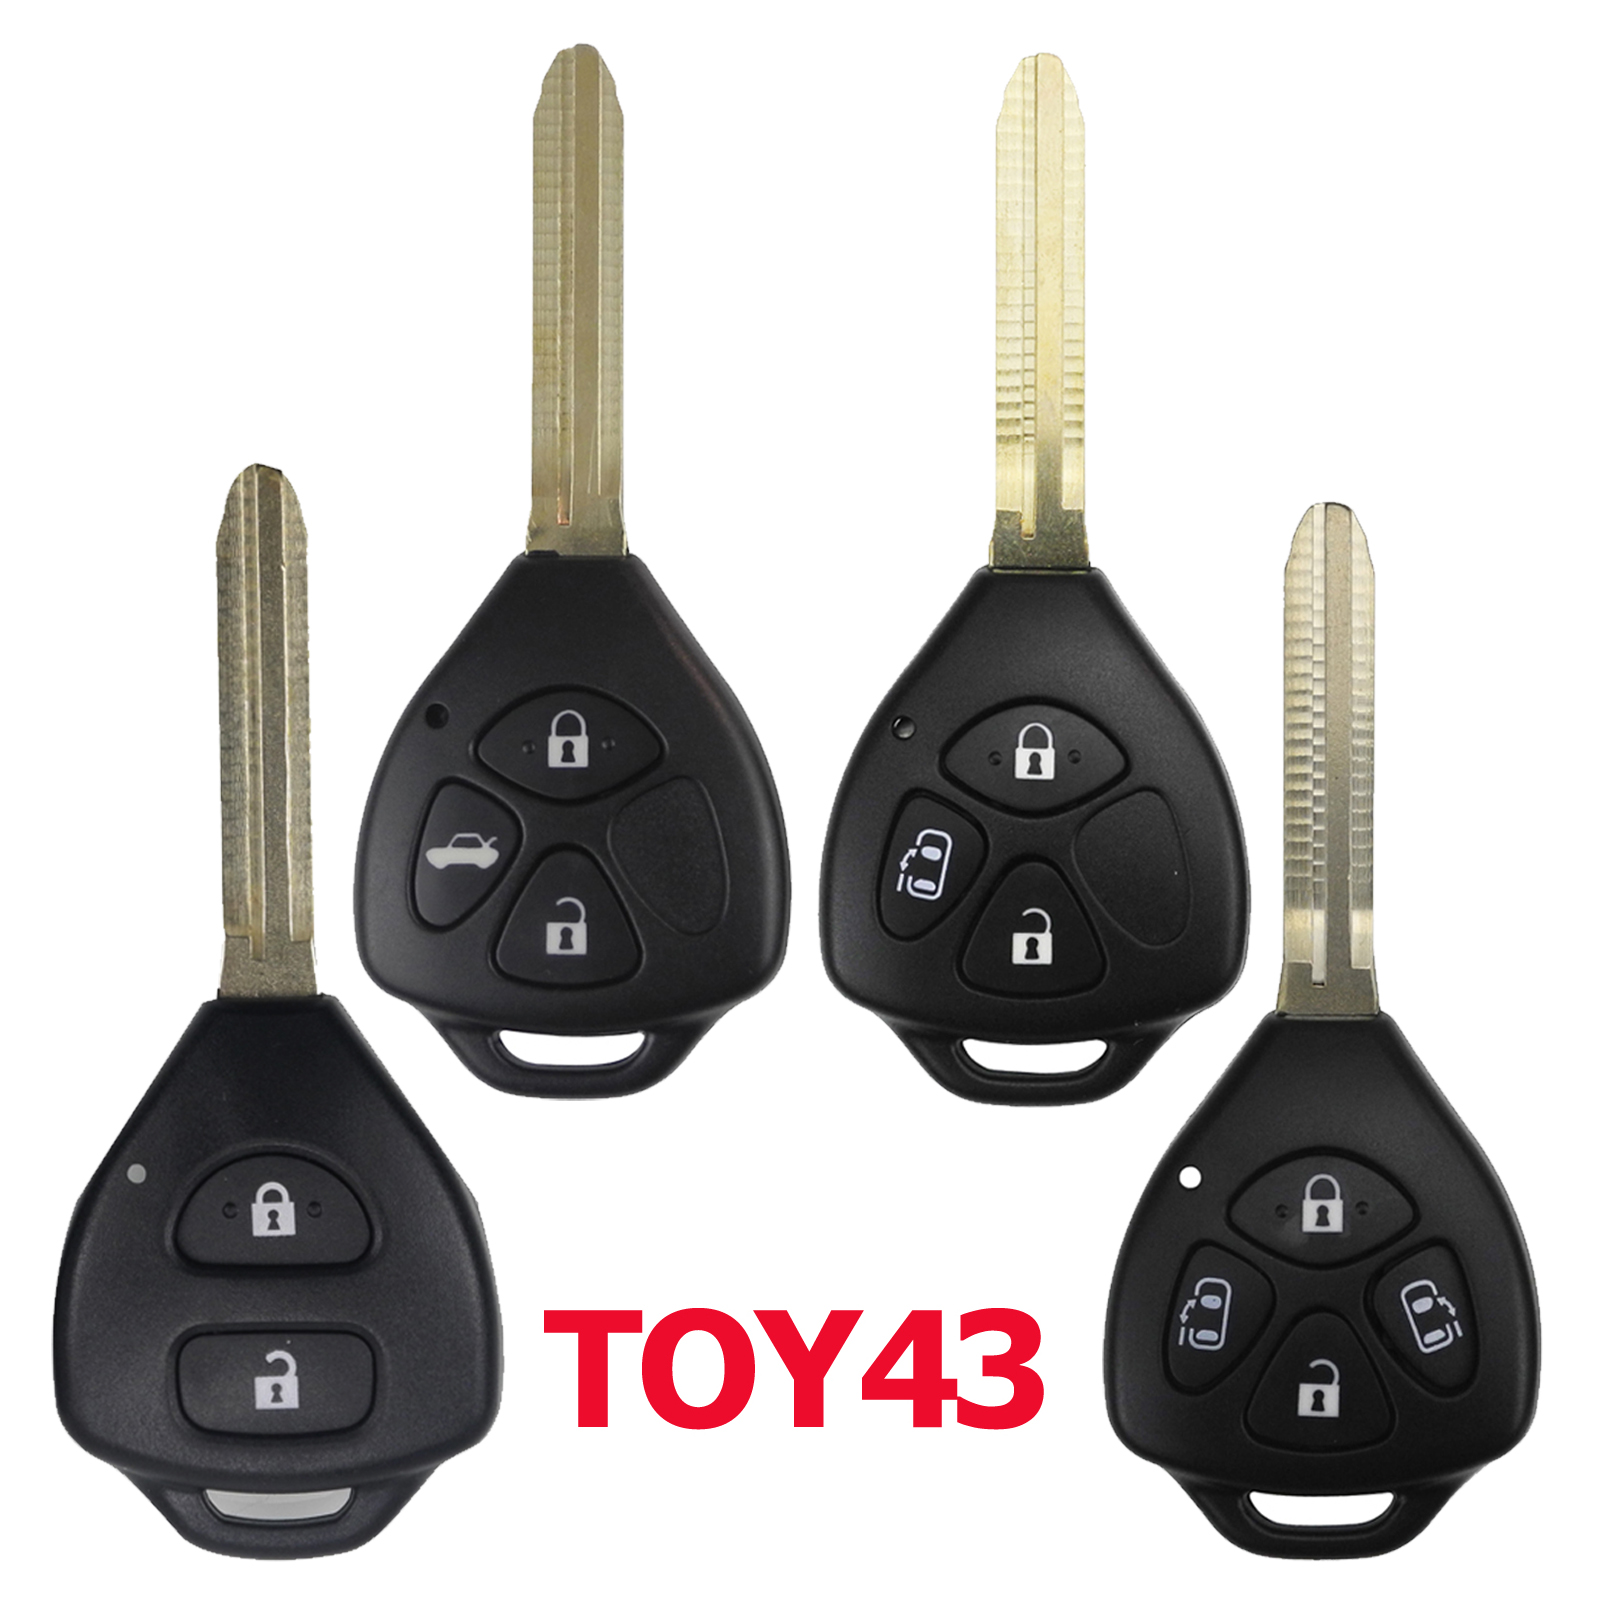 2/3/4 BTN Remote Car Key Case Shell FOB for Toyota Yaris Prado Tarago Camry Corolla RAV4 REIZ Crown Avalon Venza 2007-2012 TOY43(China)